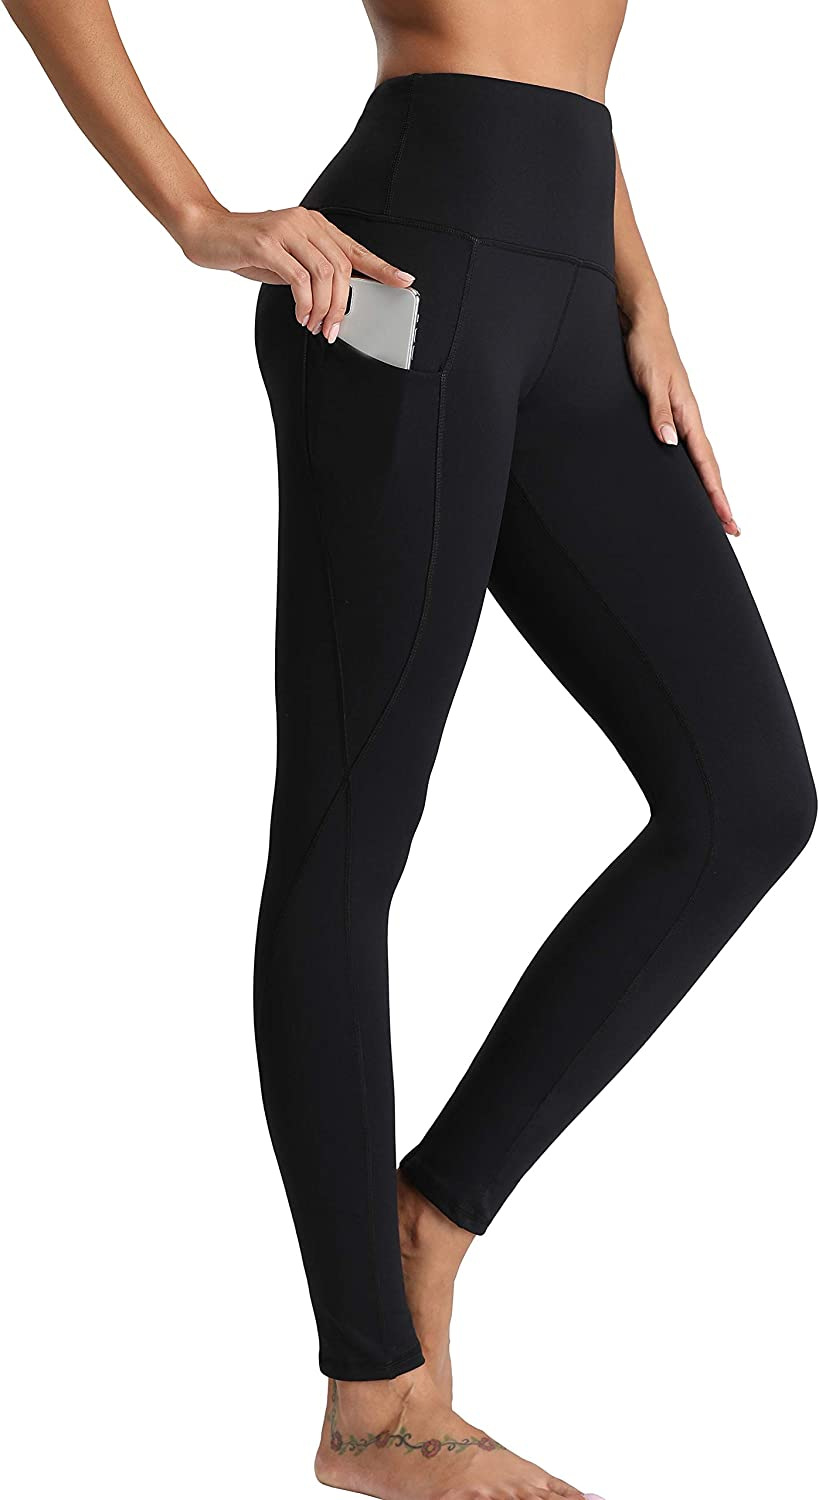 Oalka Women Yoga Pants Workout Running Leggings: Clothing